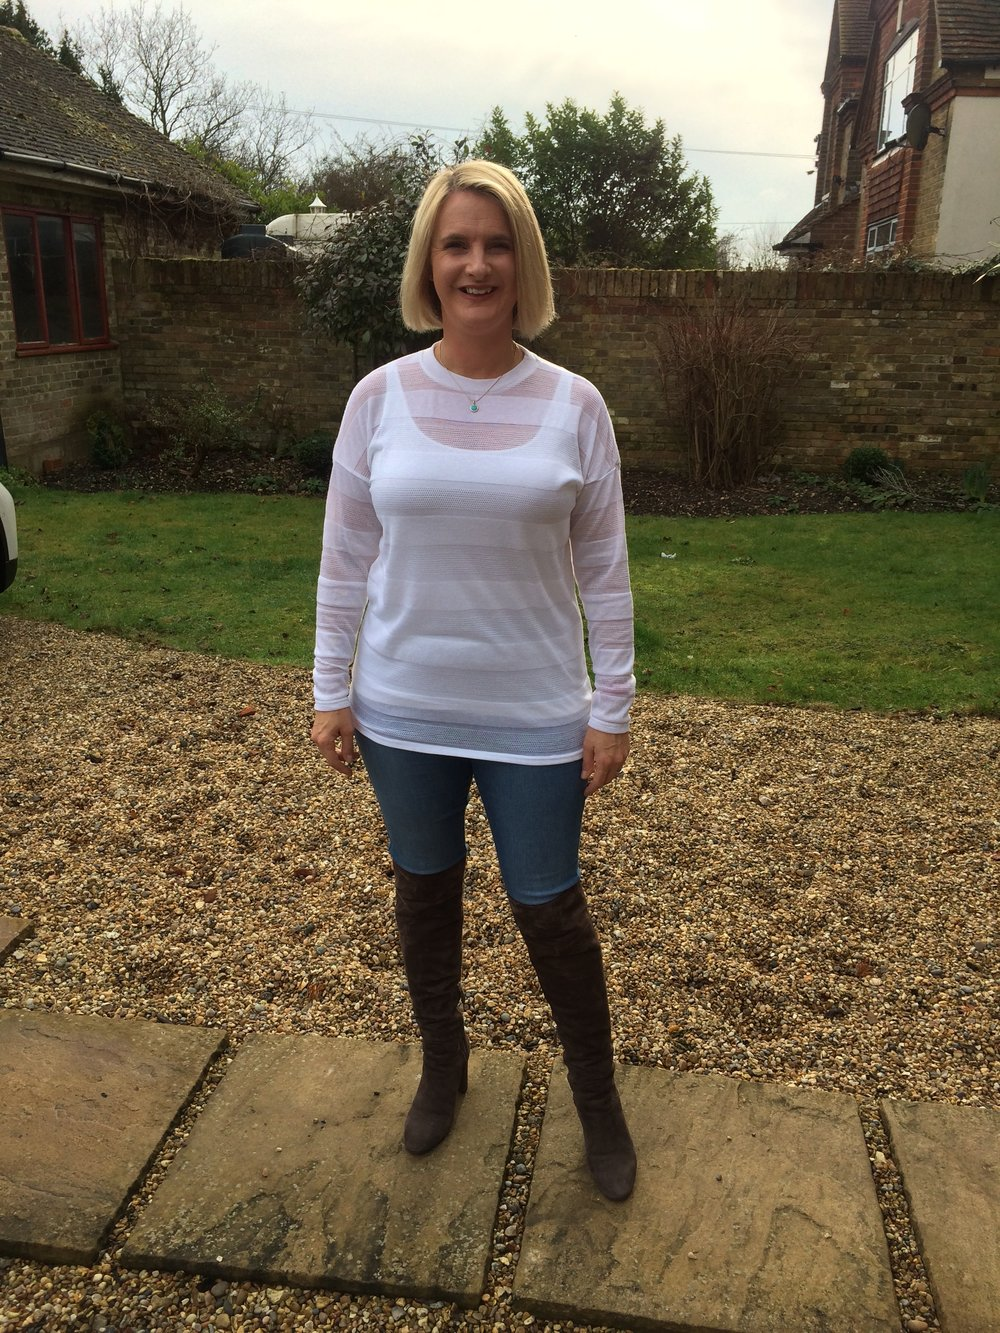 Top from Next, Vest from Marks and Spencer, Eden Jeggings from Dorothy Perkins, Boots from LK Bennett.